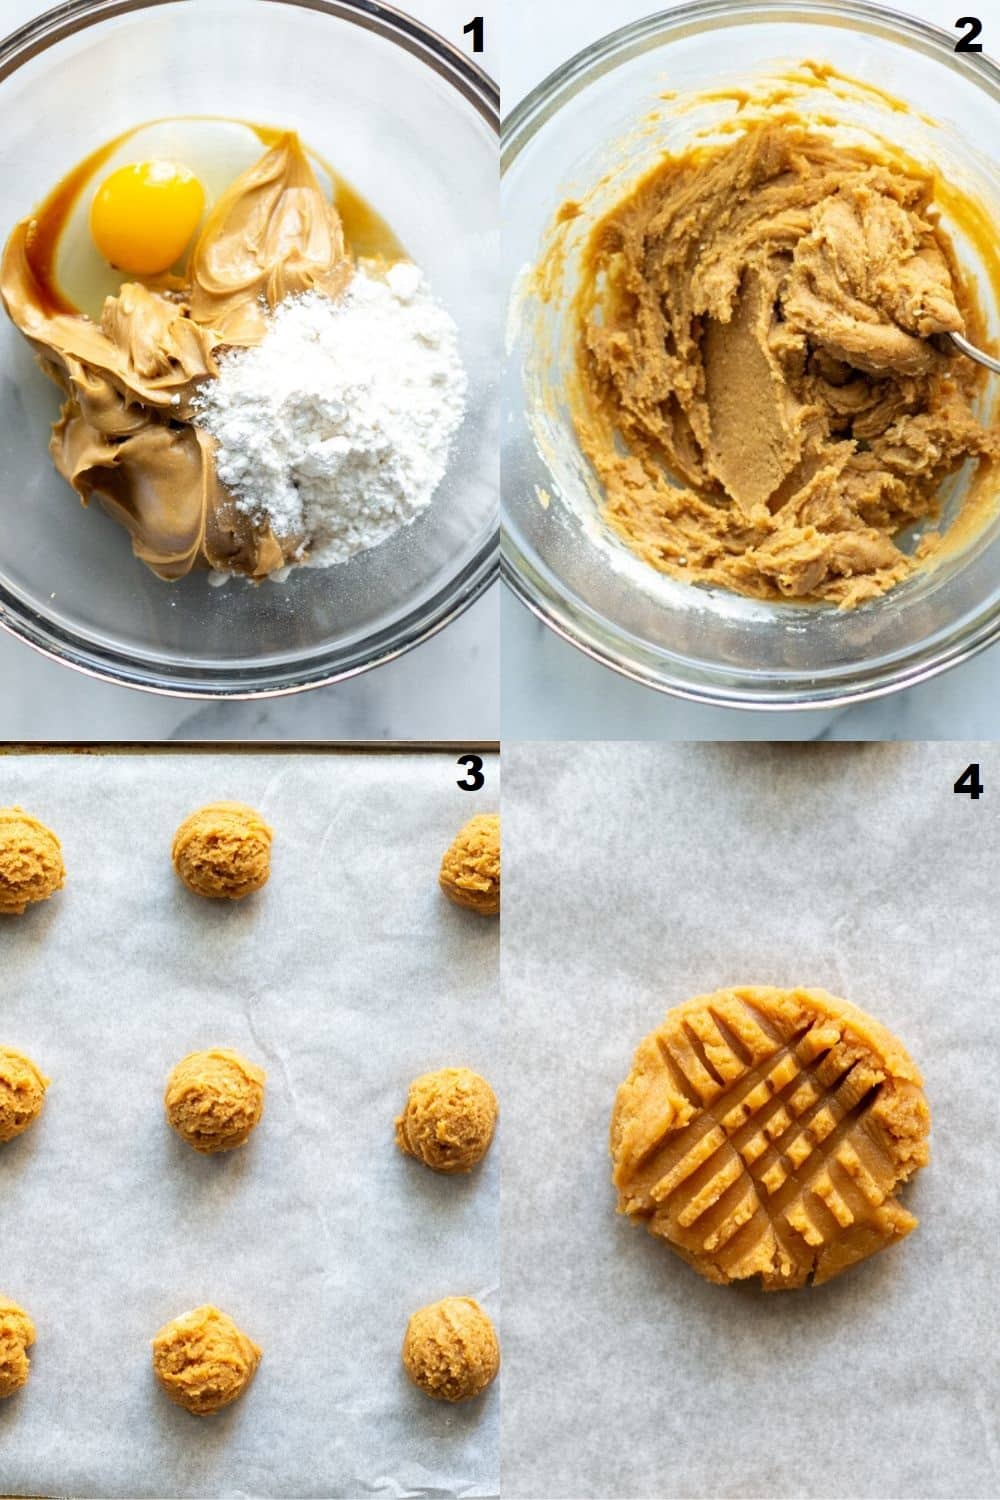 a collage of four images showing steps for making peanut butter cookies